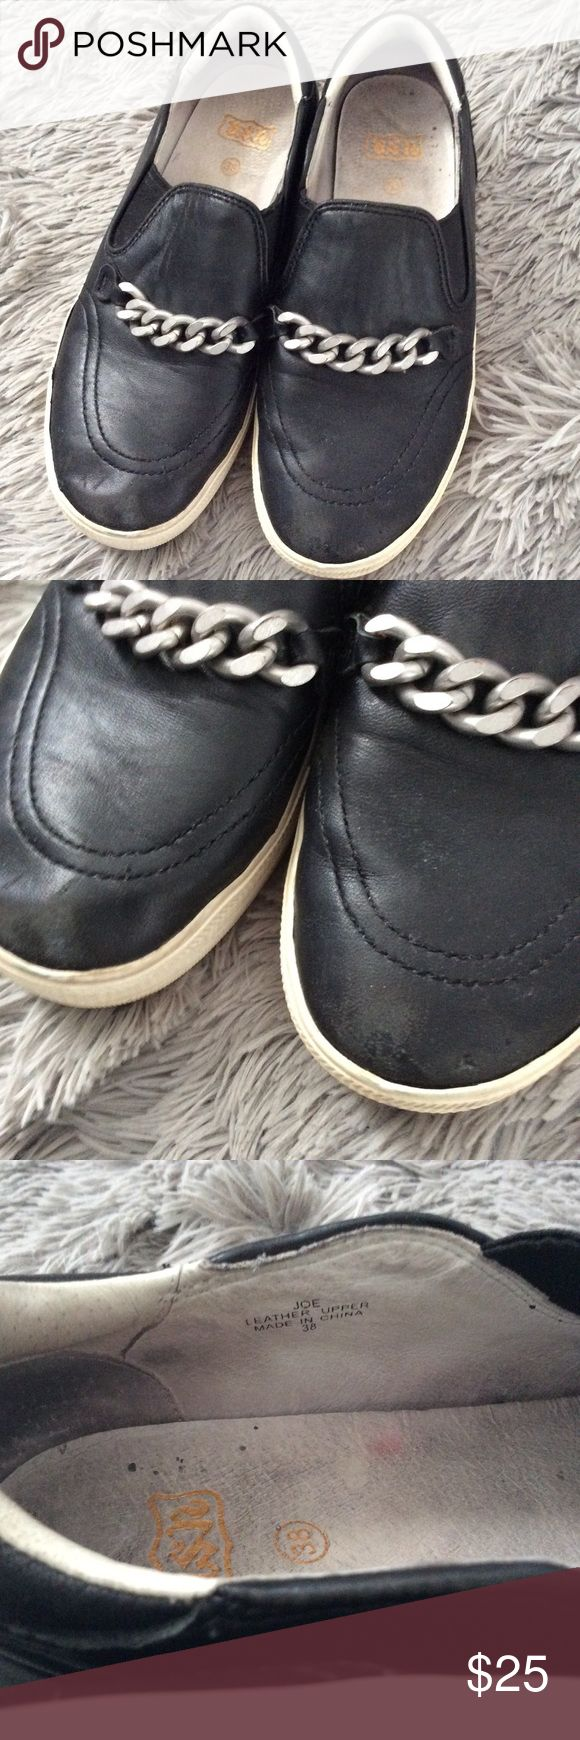 Ash Sneaker Black Leather Chain Slip On JOE Sz 38 Ash Black Leather Sneaker Style JOE Black Leather with Chain detail Size 38 these have some condition issues as the leather has wear and scuffs at Front toe area, some all over marks scuffs, sole shows wear, some dirt to foot beds Ash Shoes Athletic Shoes